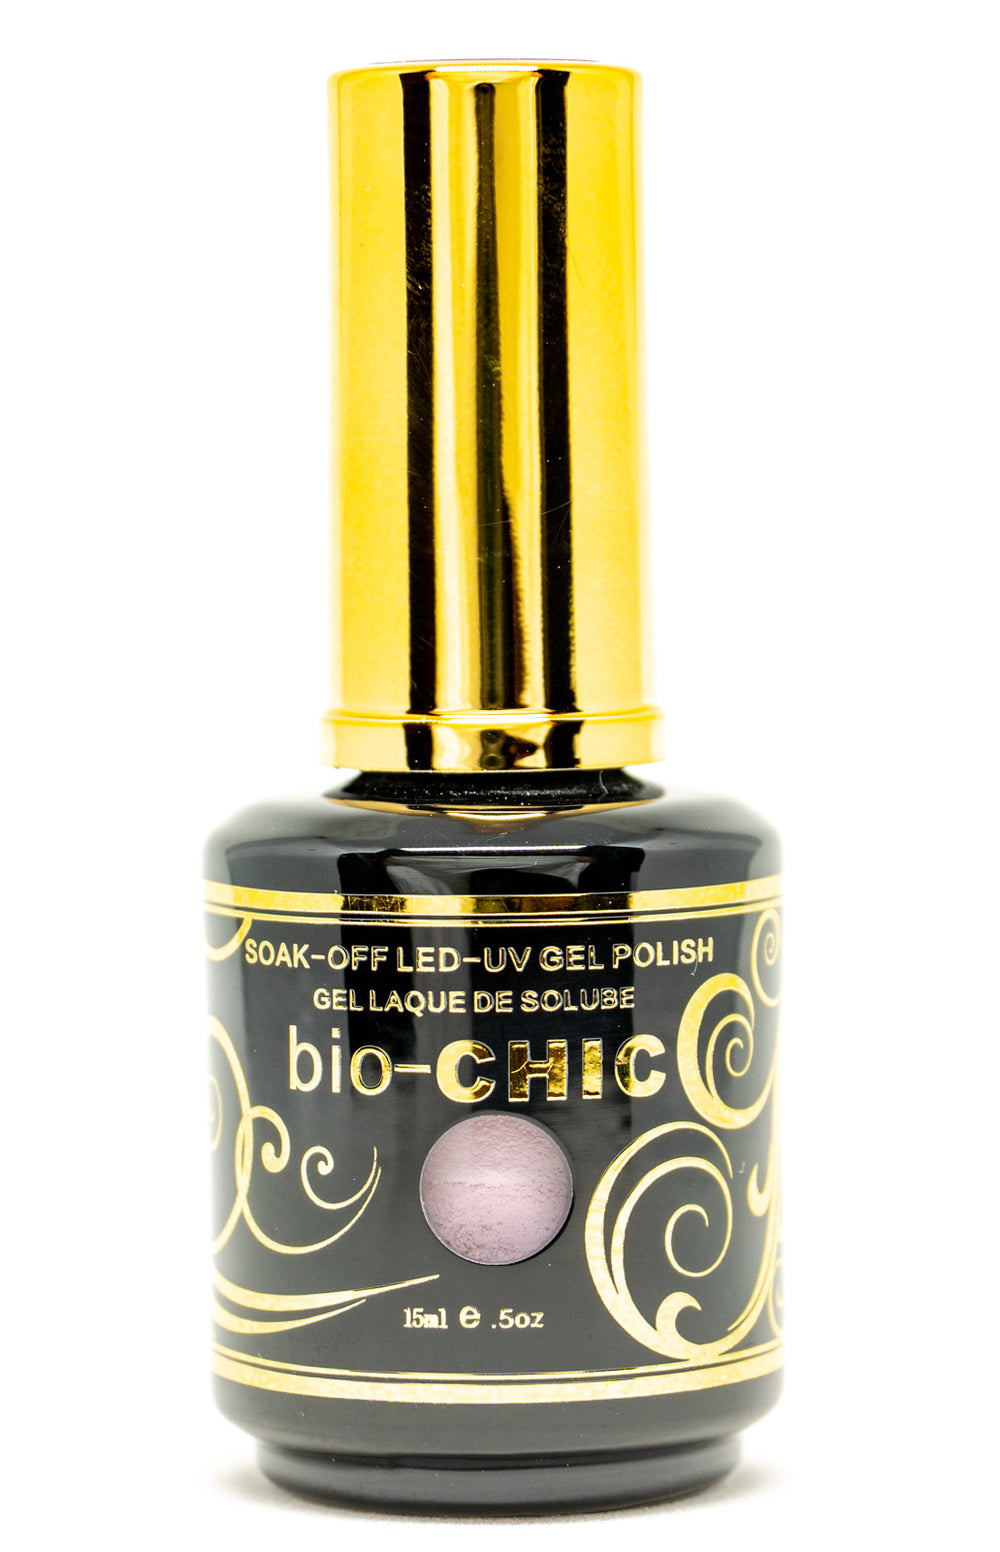 Bio-Chic Gel Polish - #426